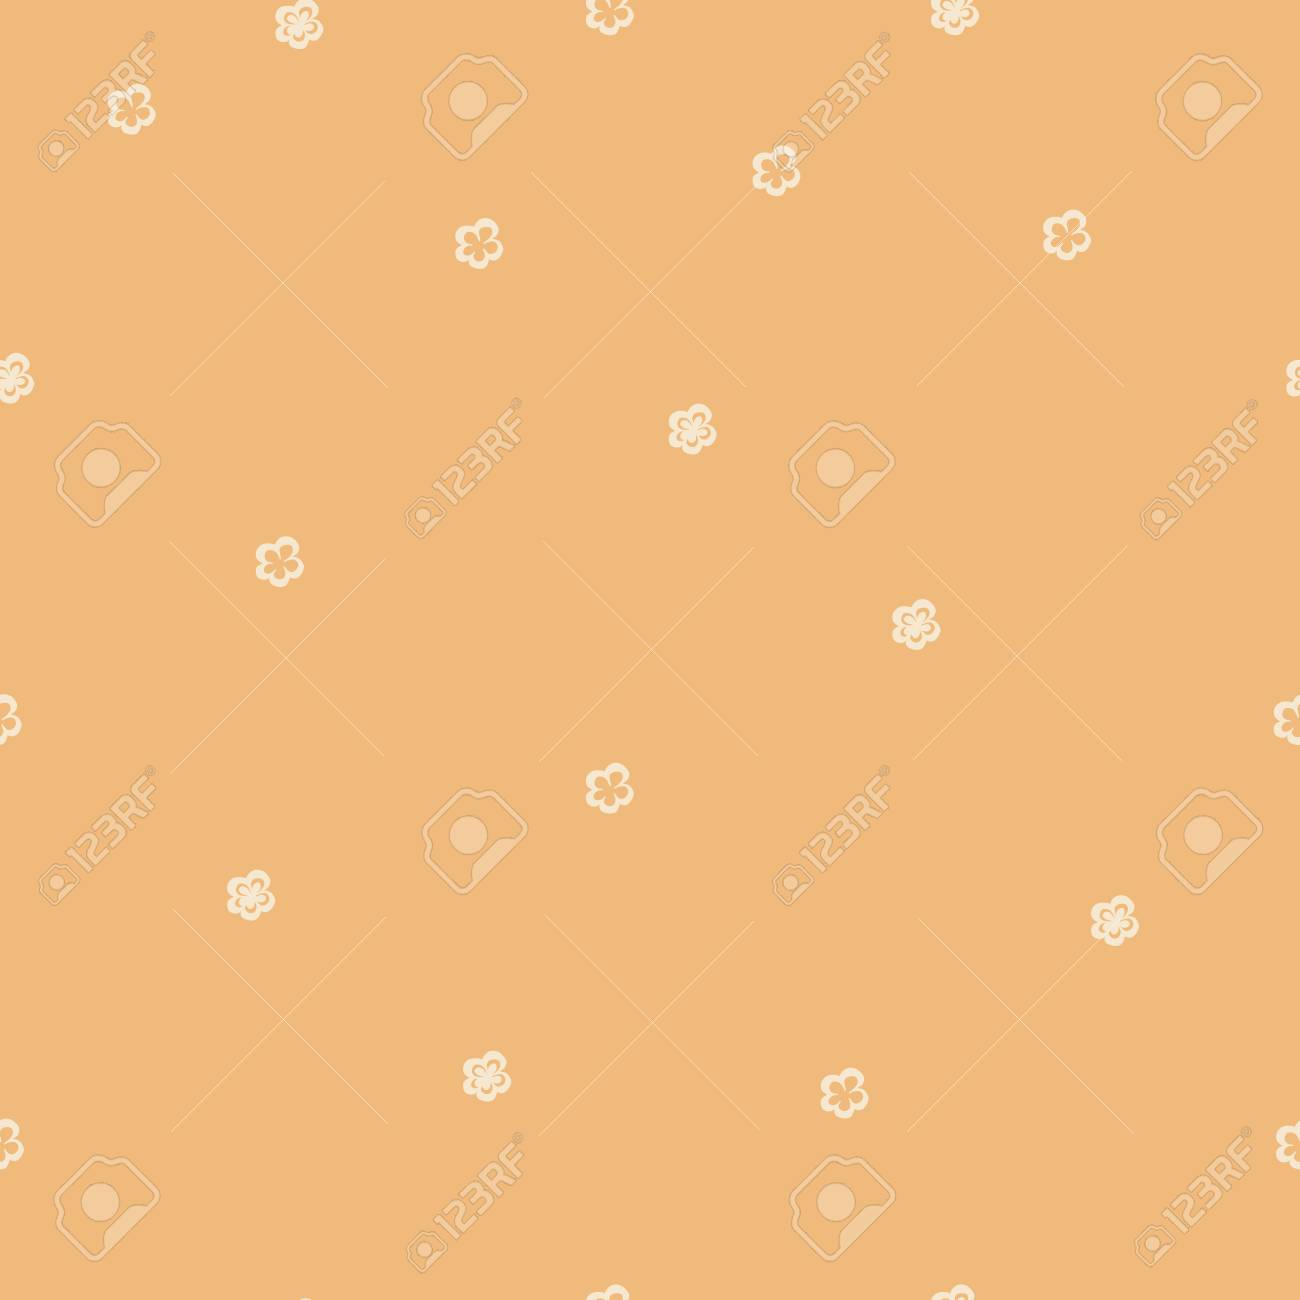 Seamless Pattern With Cute Small Flowers Can Be Used For Wallpaper Royalty Free Cliparts Vectors And Stock Illustration Image 85402246